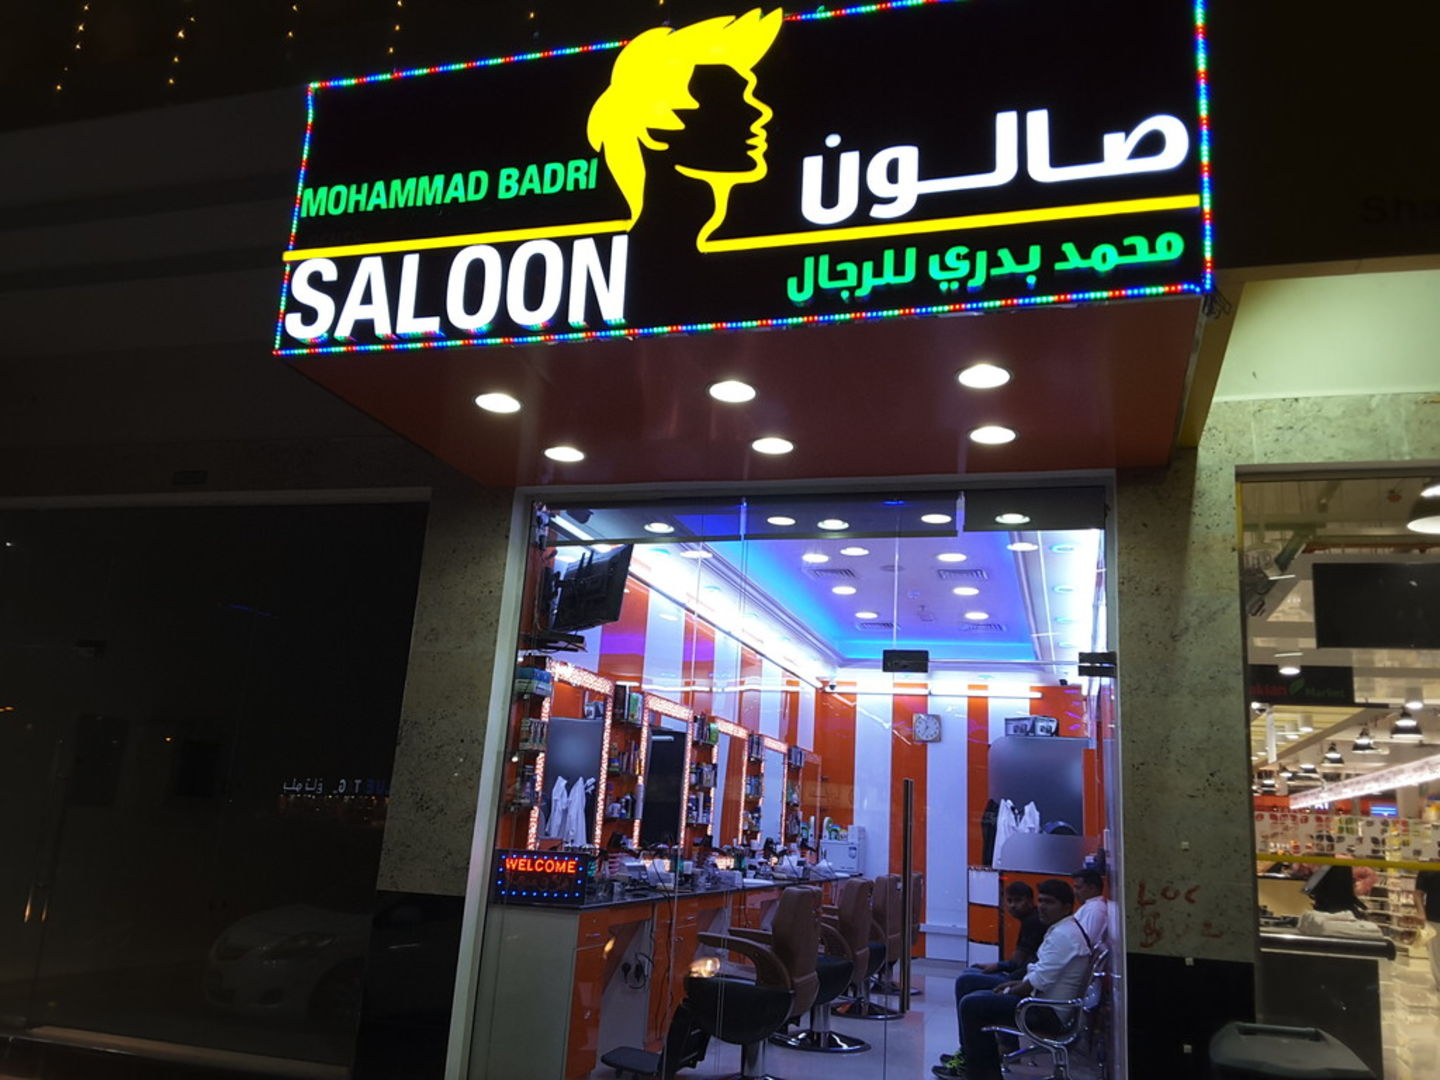 HiDubai-business-mohammad-al-badri-gents-saloon-beauty-wellness-health-beauty-salons-al-nahda-1-dubai-2